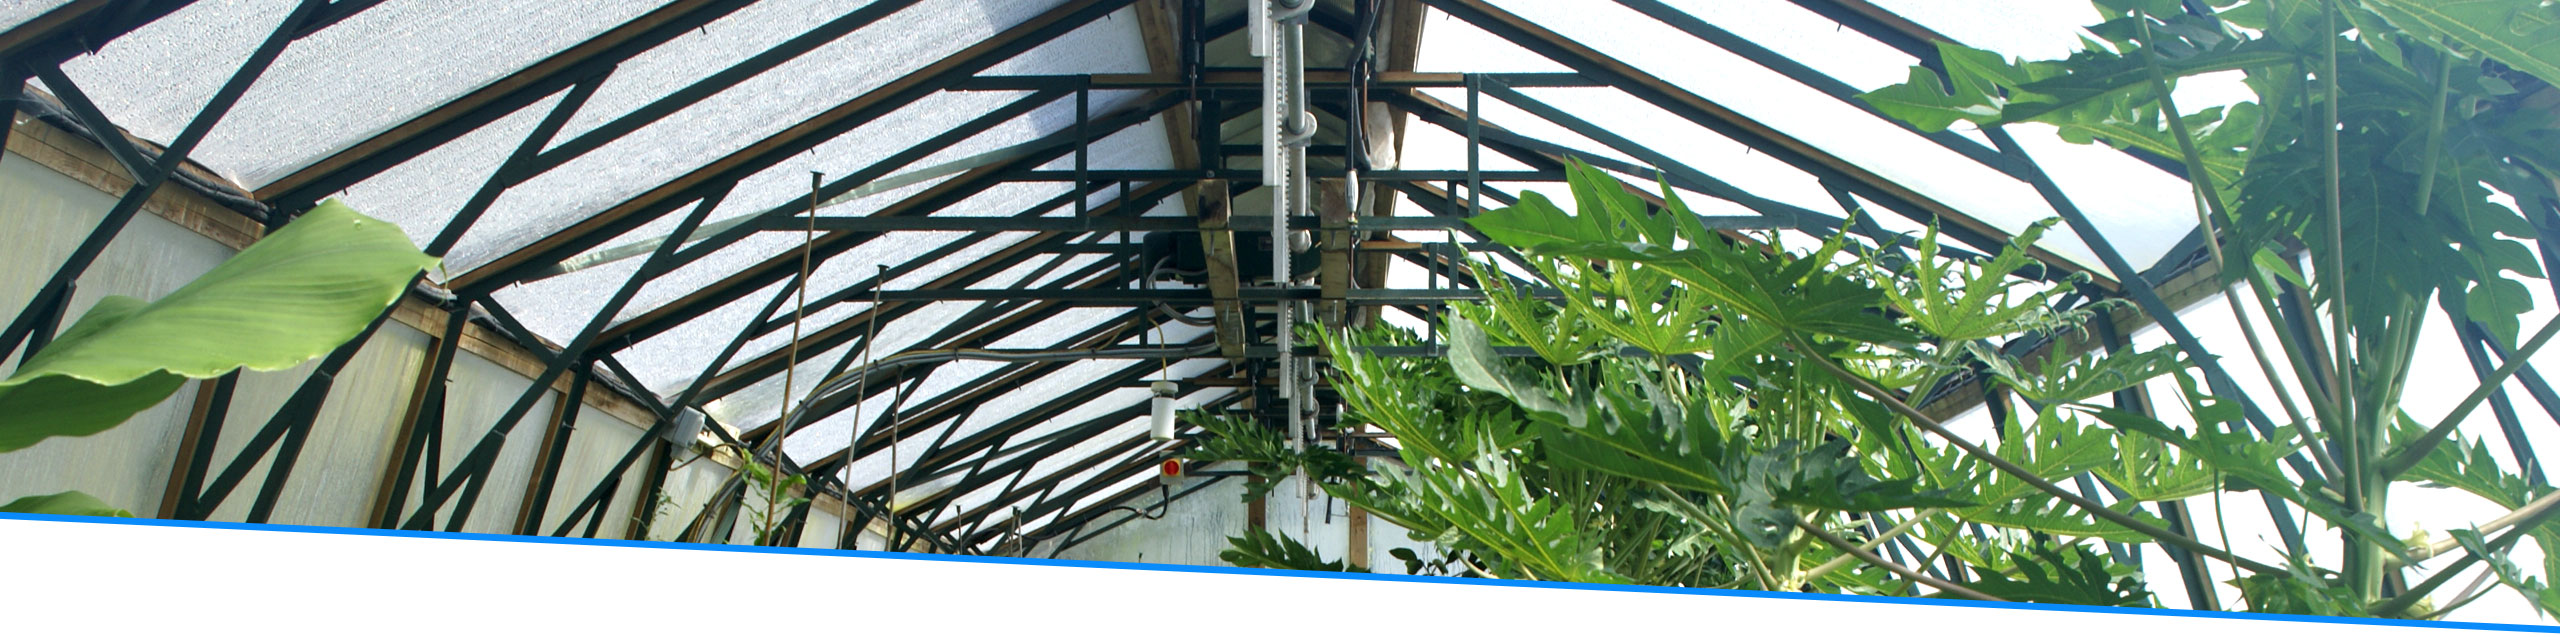 ETFE-panels-for-horticulture1